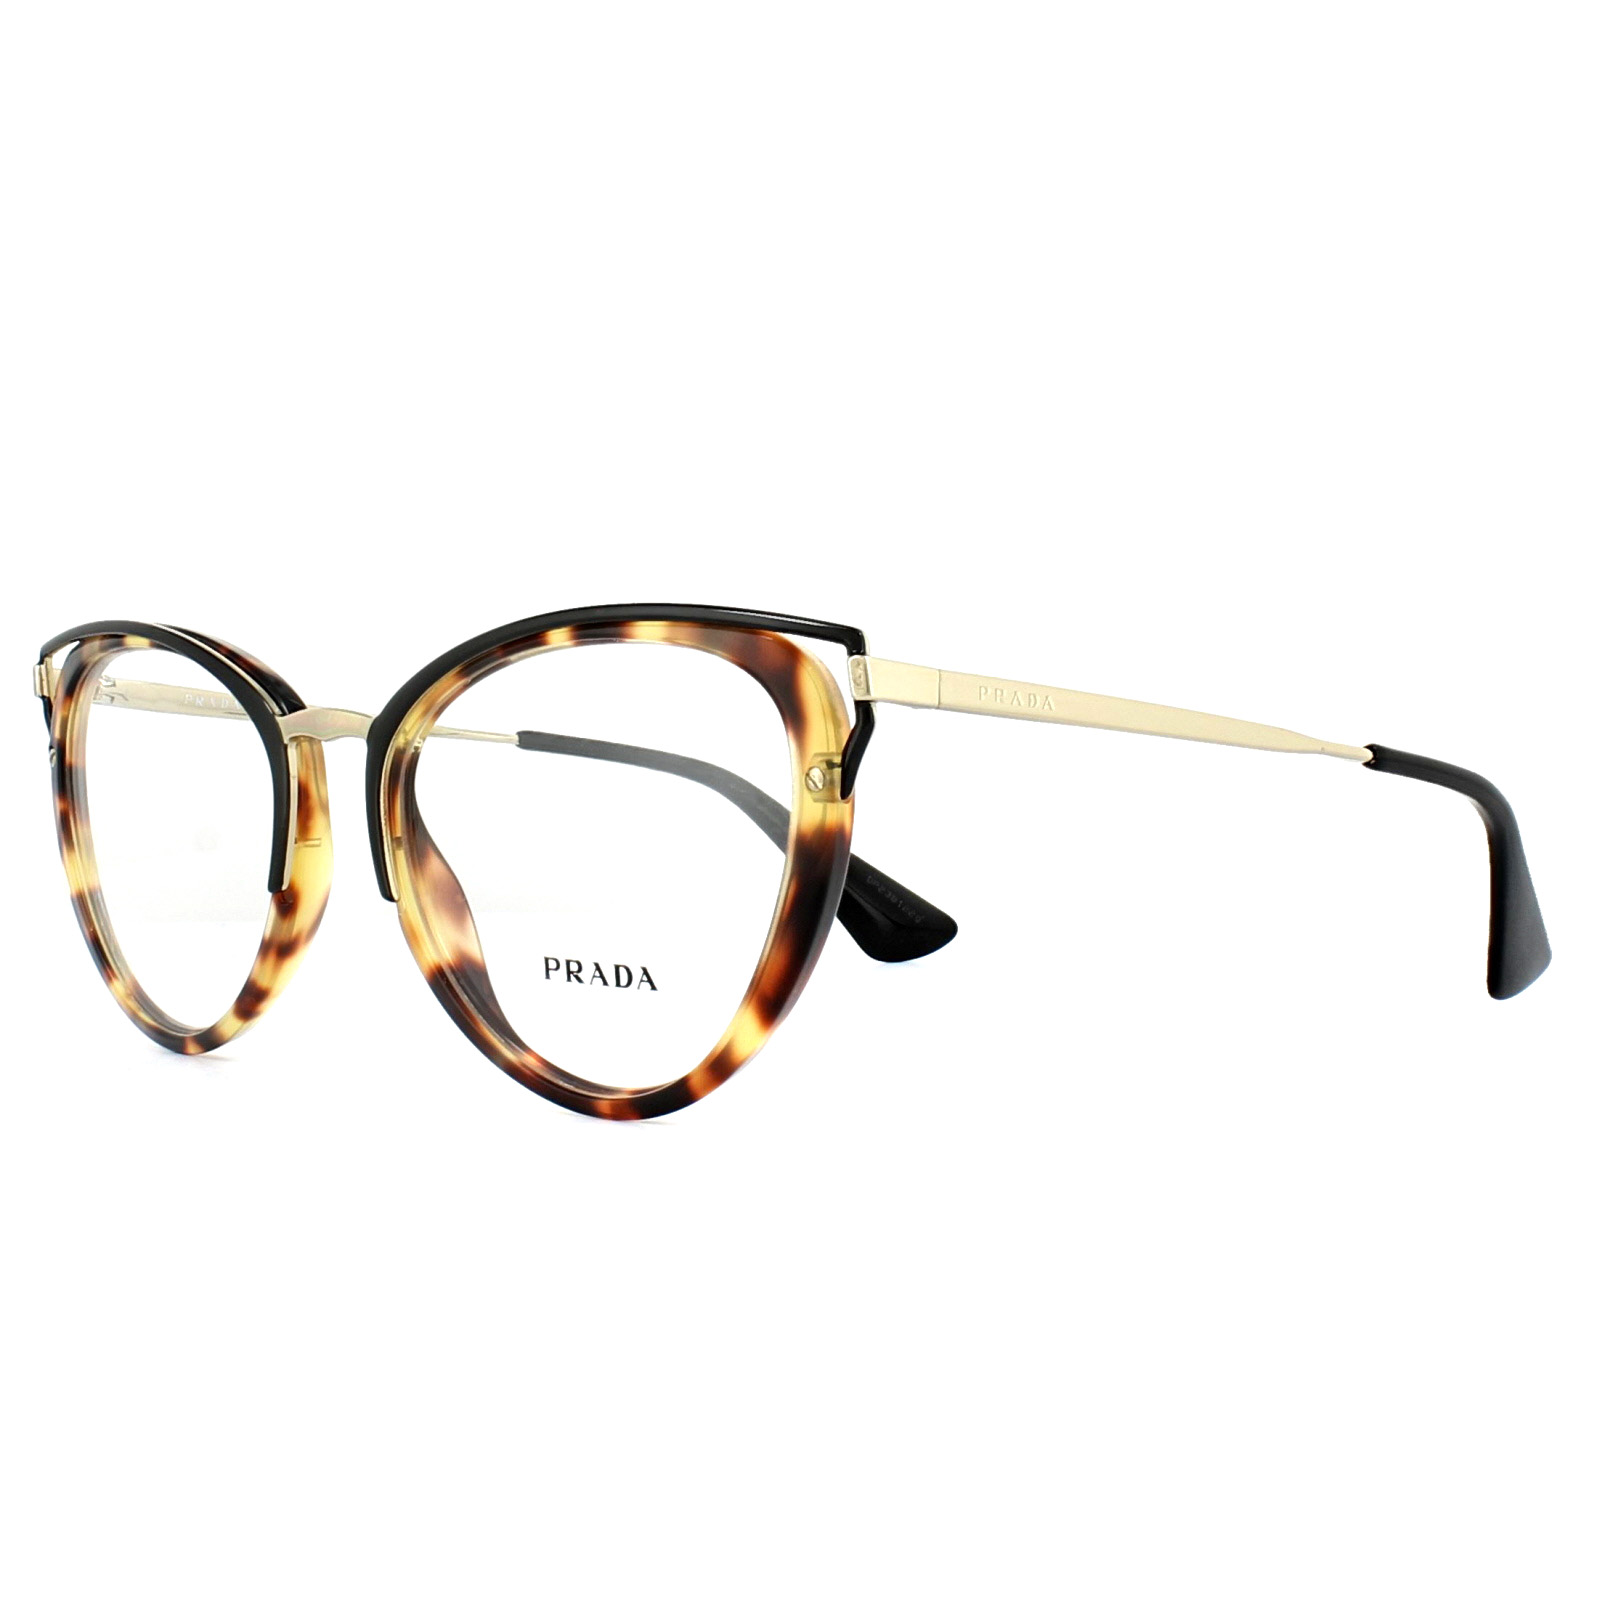 0bdd4cfac2d Sentinel Prada Glasses Frames PR53UV 7S01O1 Medium Havana 50mm Womens